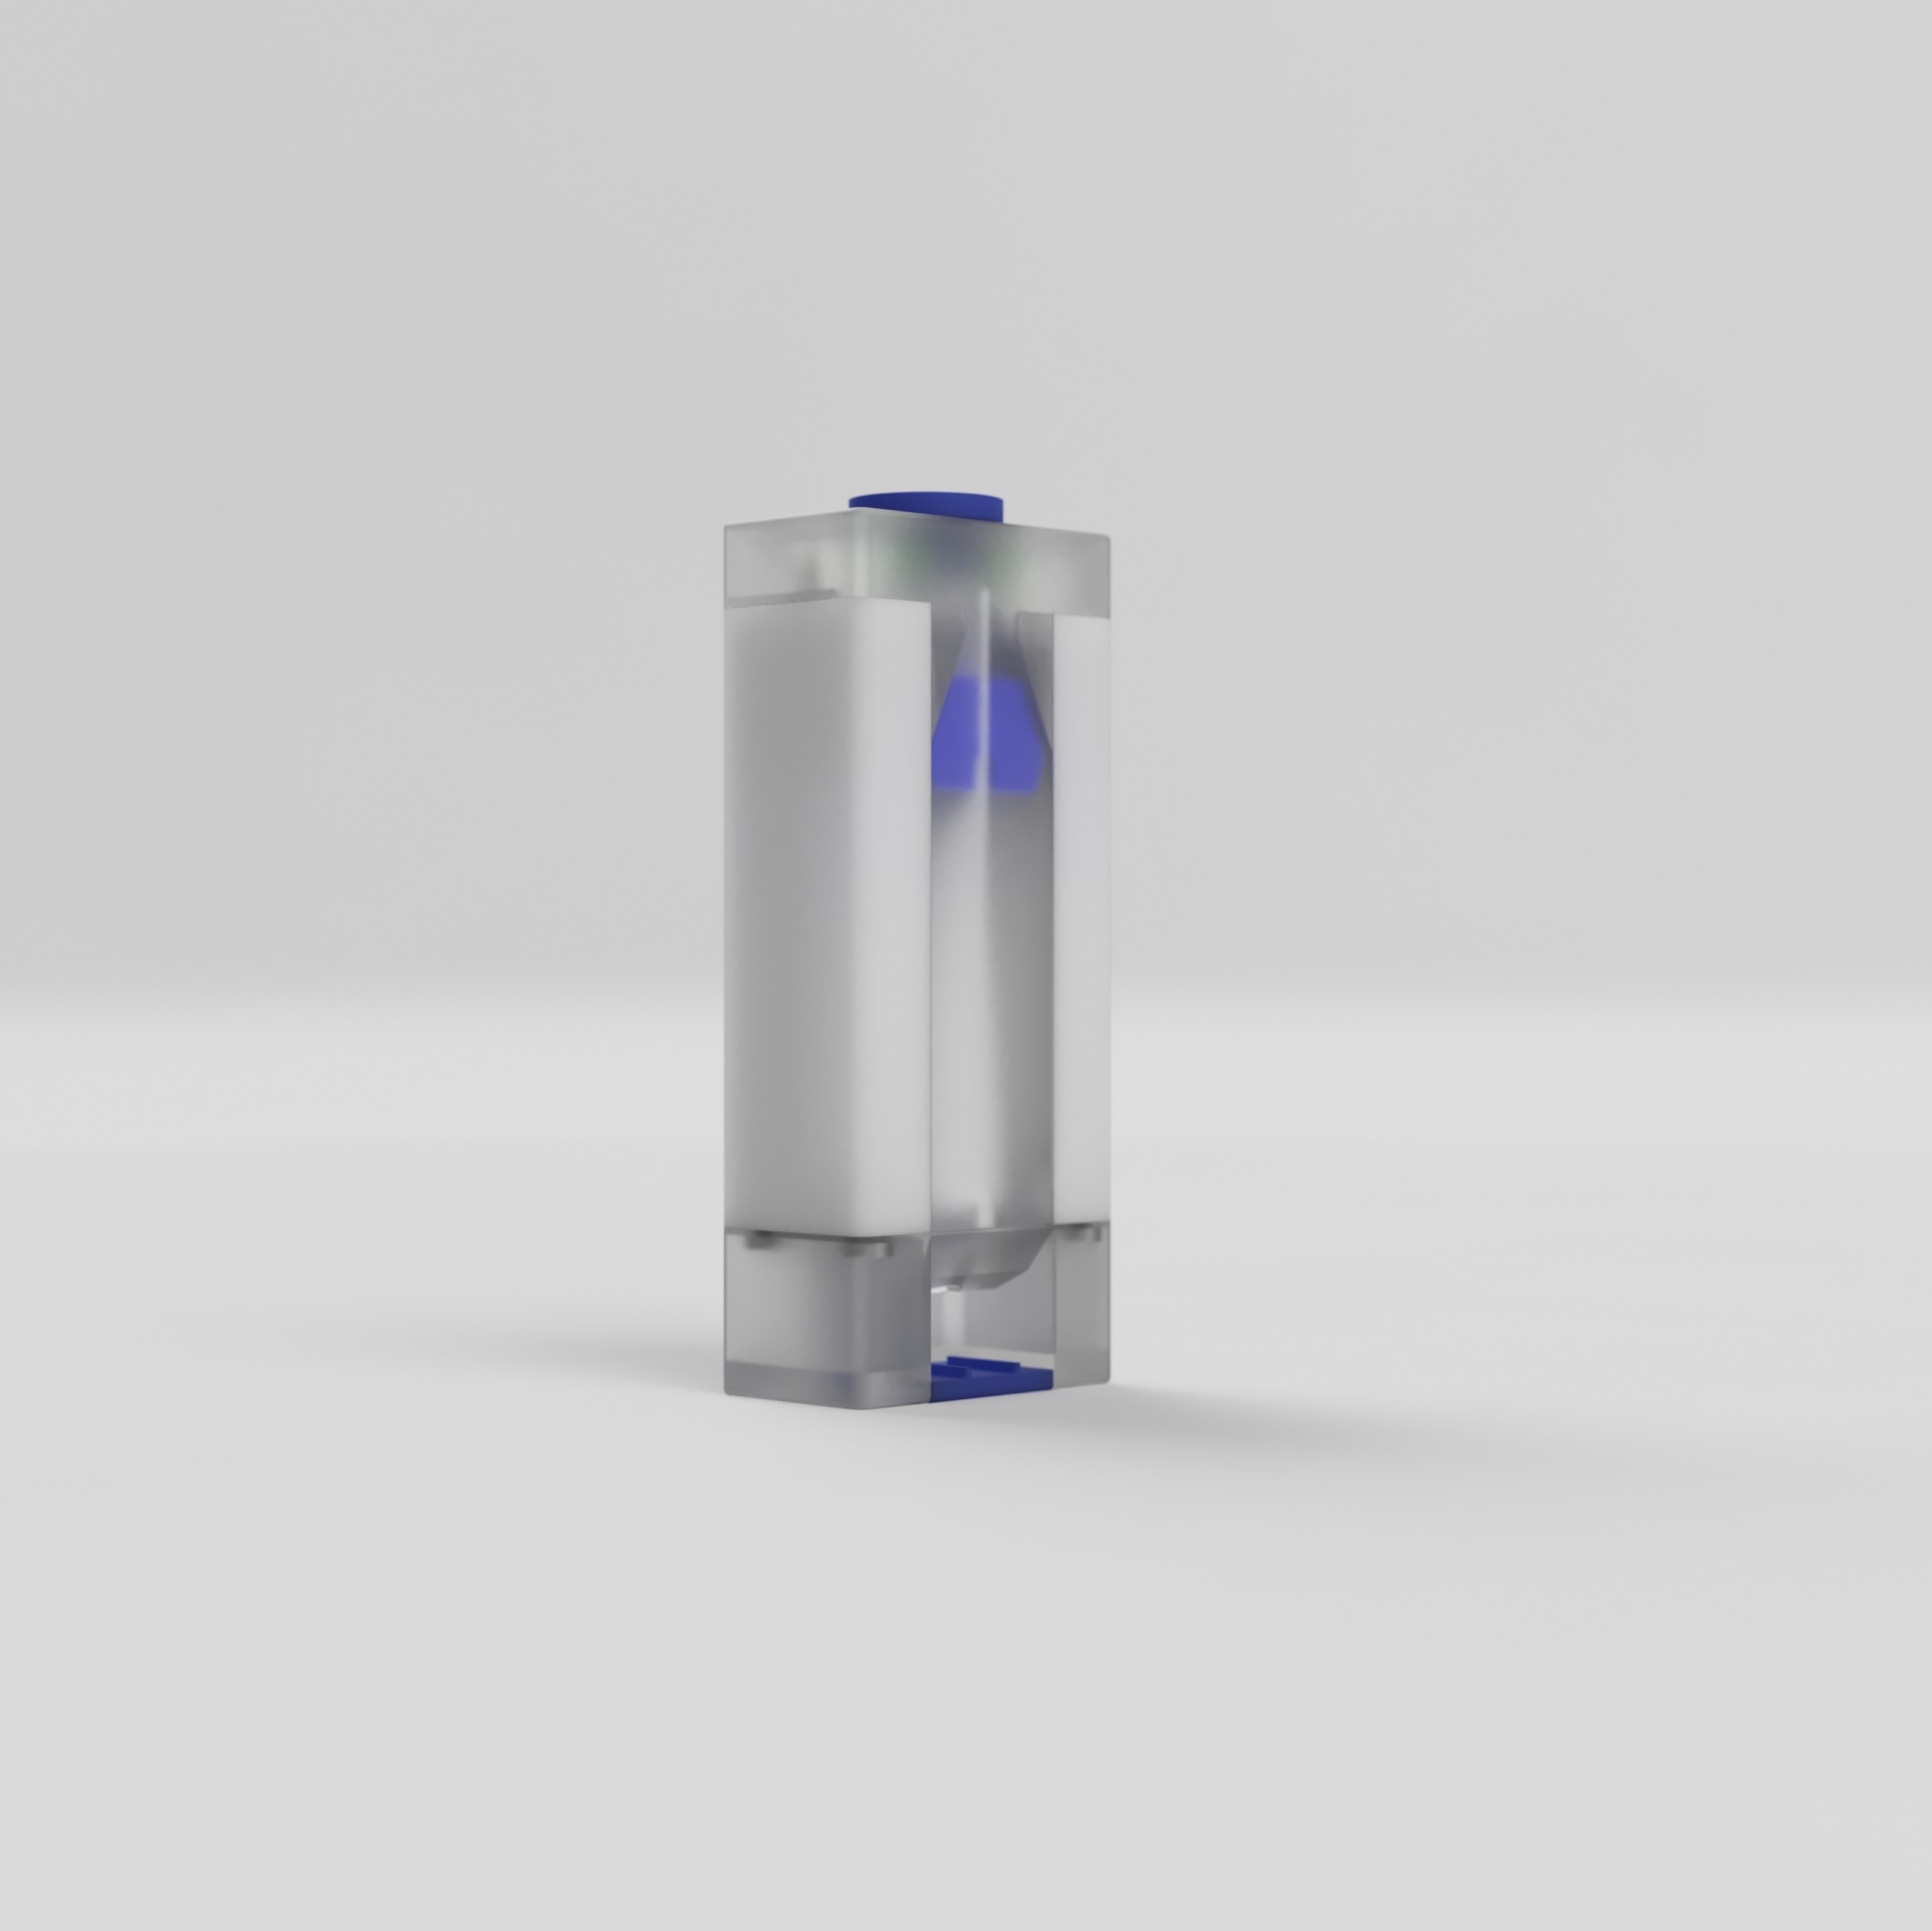 Assy_2017-Nov-28_06-38-26PM-000_CustomizedView13325155747_png.jpg Download free STL file Toothpaste Dispenser • 3D print model, Anthony_SA